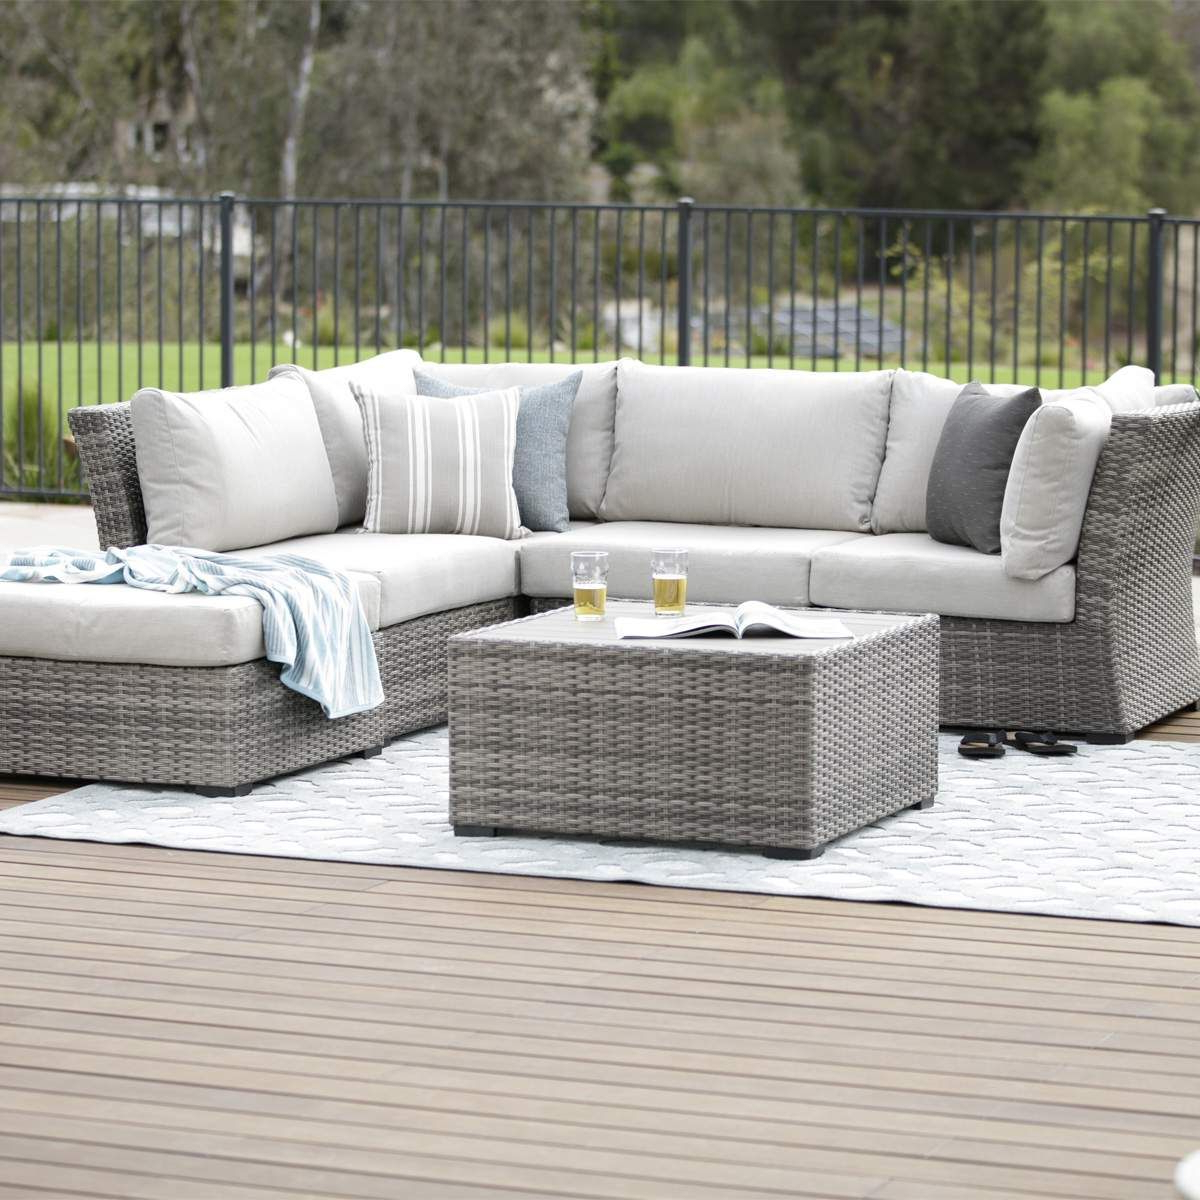 Sectional Pertaining To Well Known Vallauris Storage Patio Sectionals With Cushions (View 9 of 25)